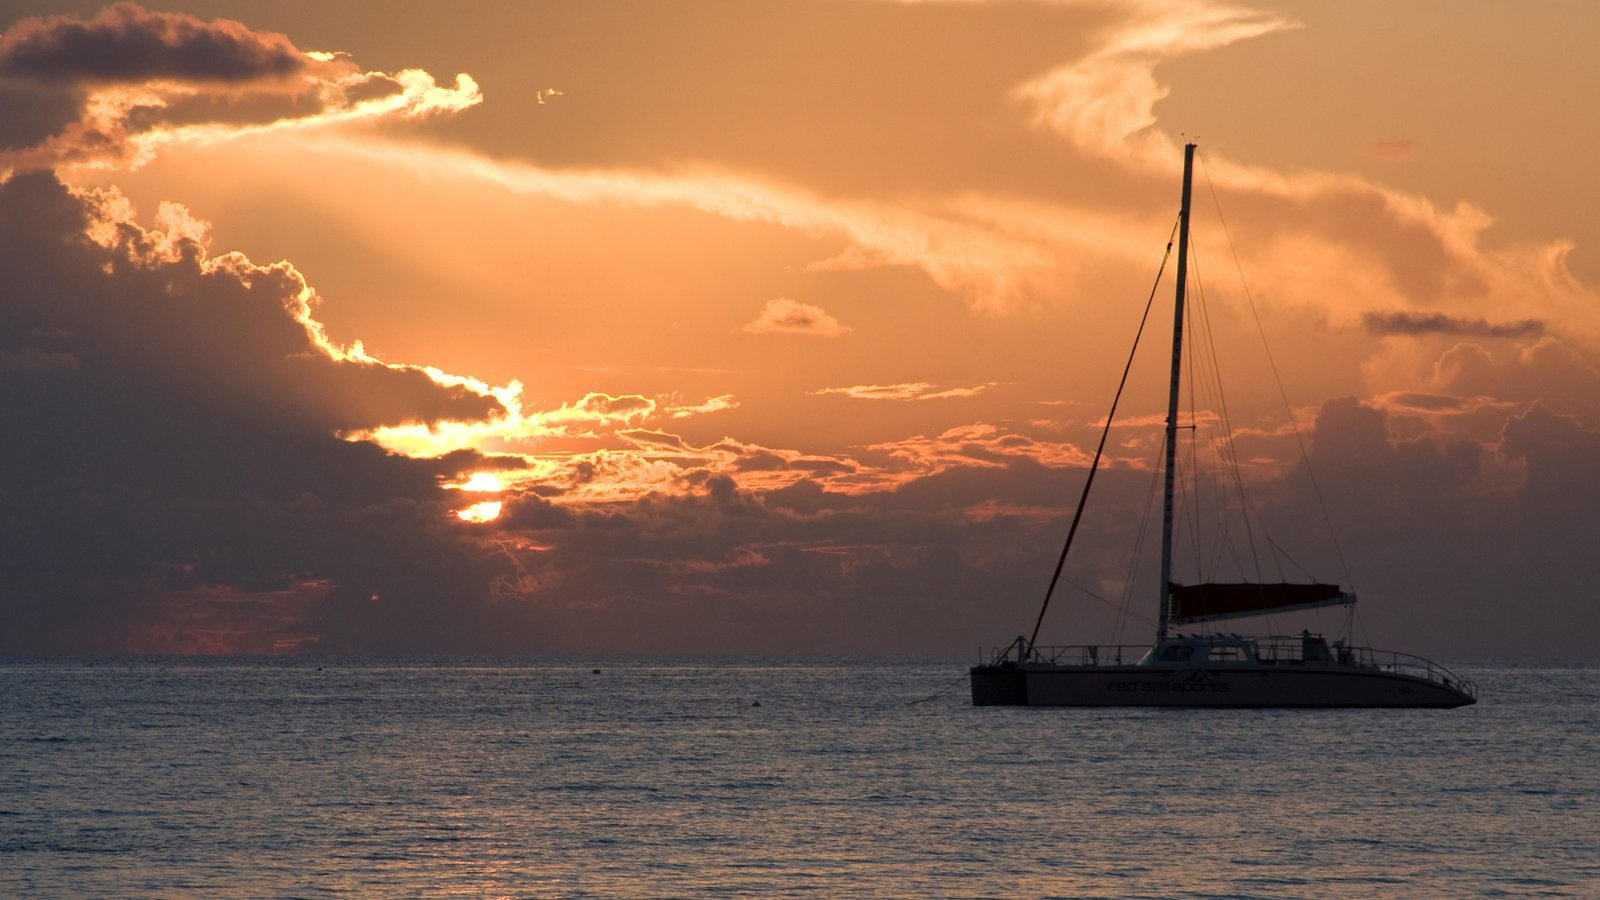 Cayman Islands showing boating, sailing and a sunset